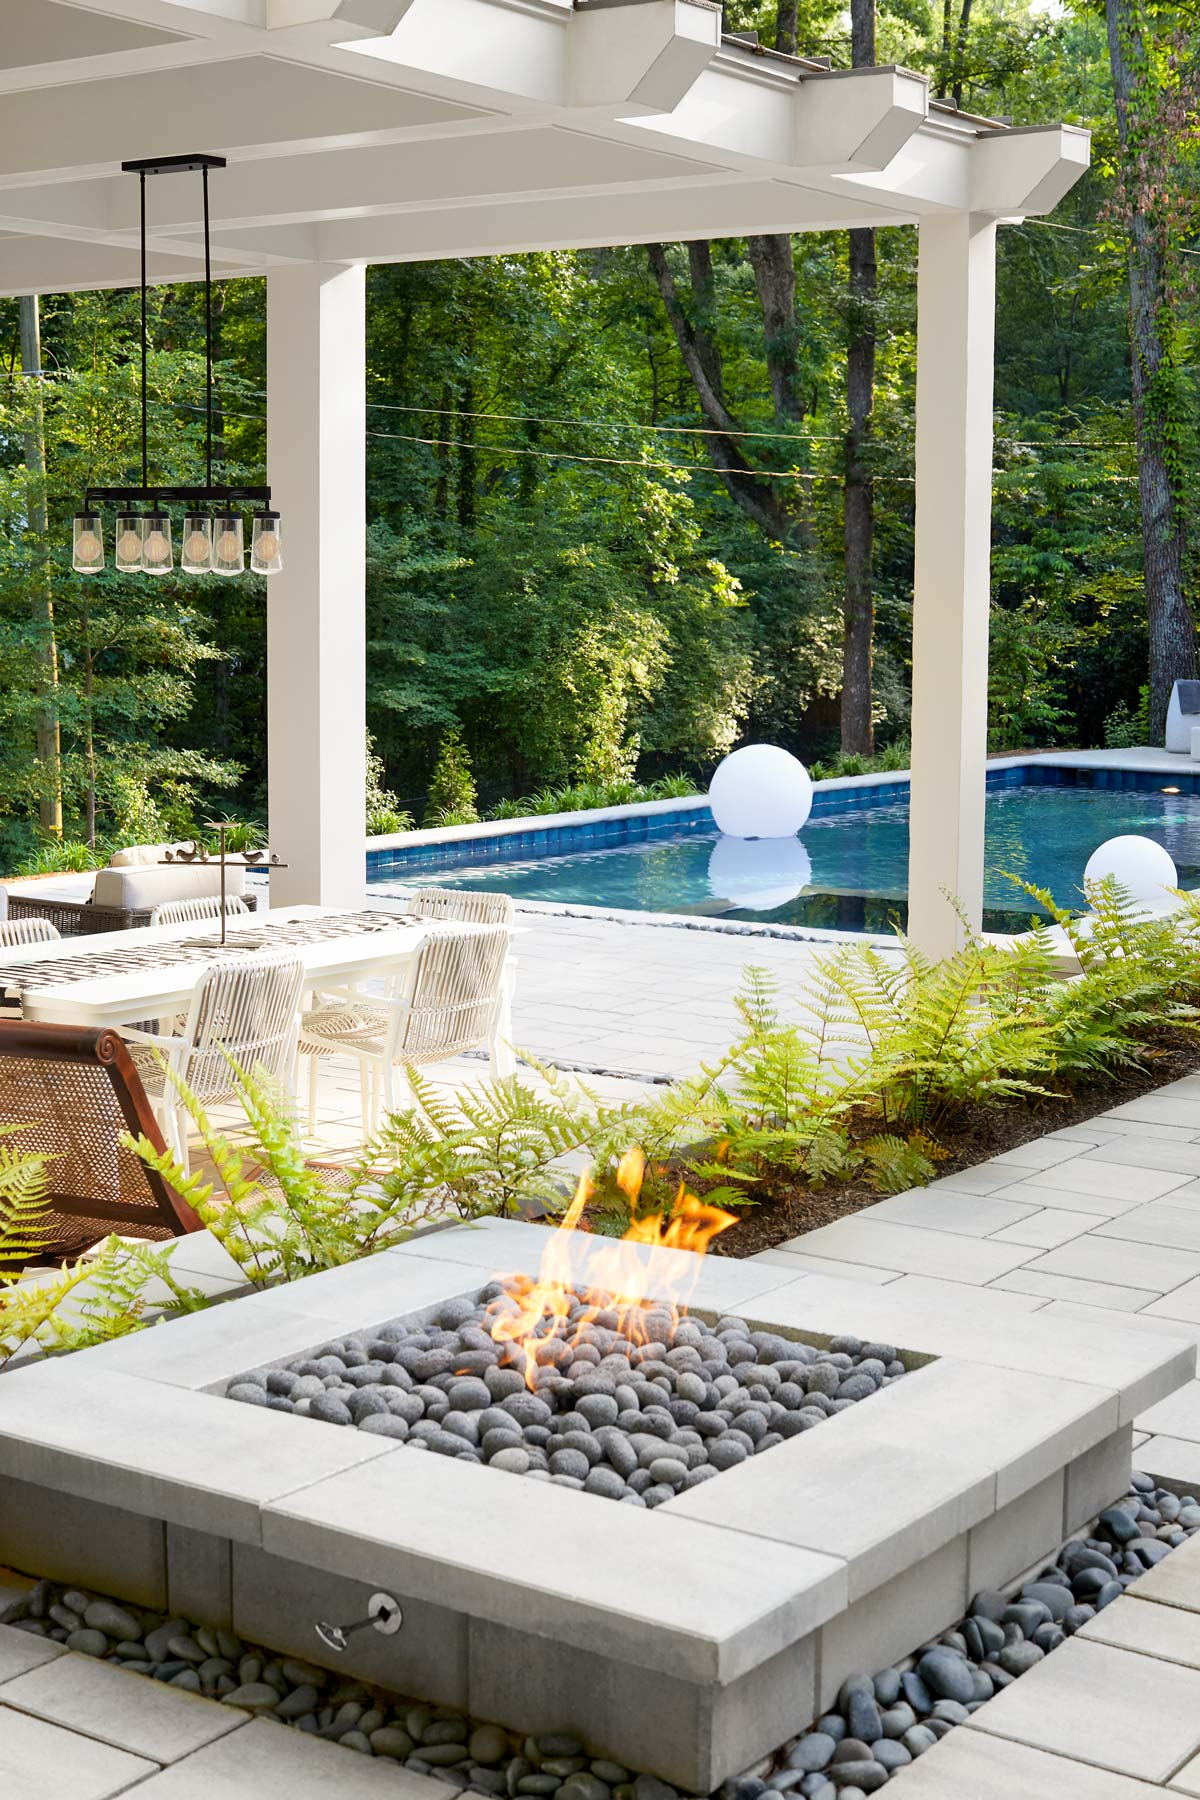 Commercial photography of beautiful outdoor fireplace, pool and patio